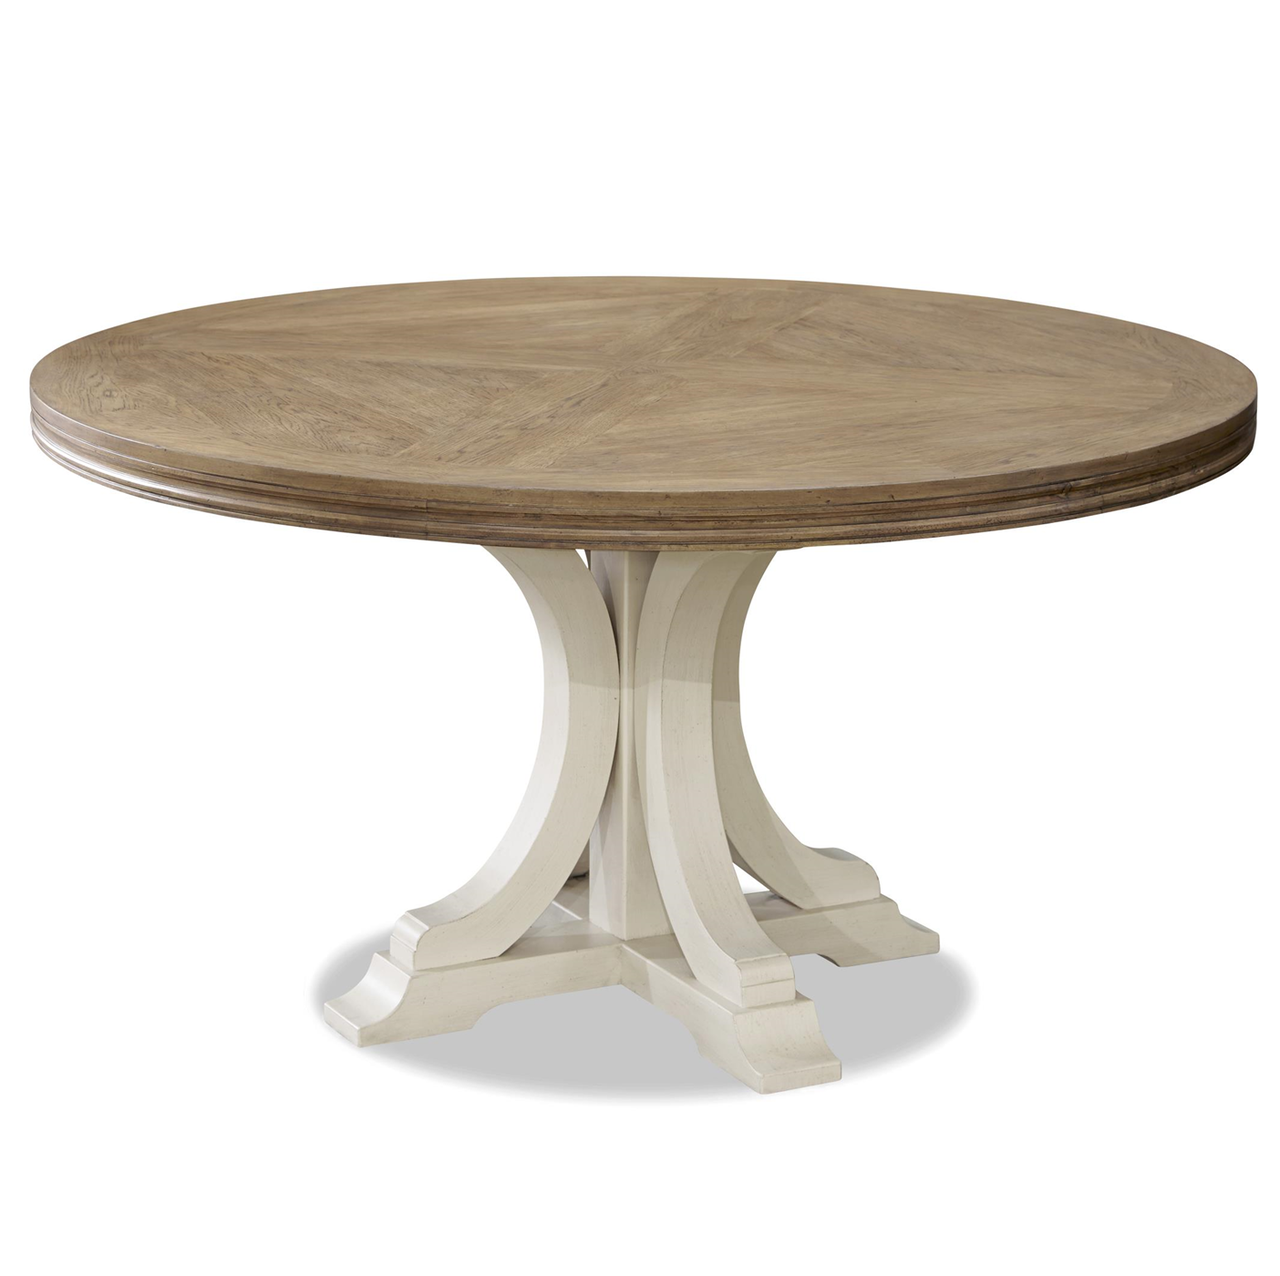 French Modern White Wood Pedestal Round Dining Table Dining